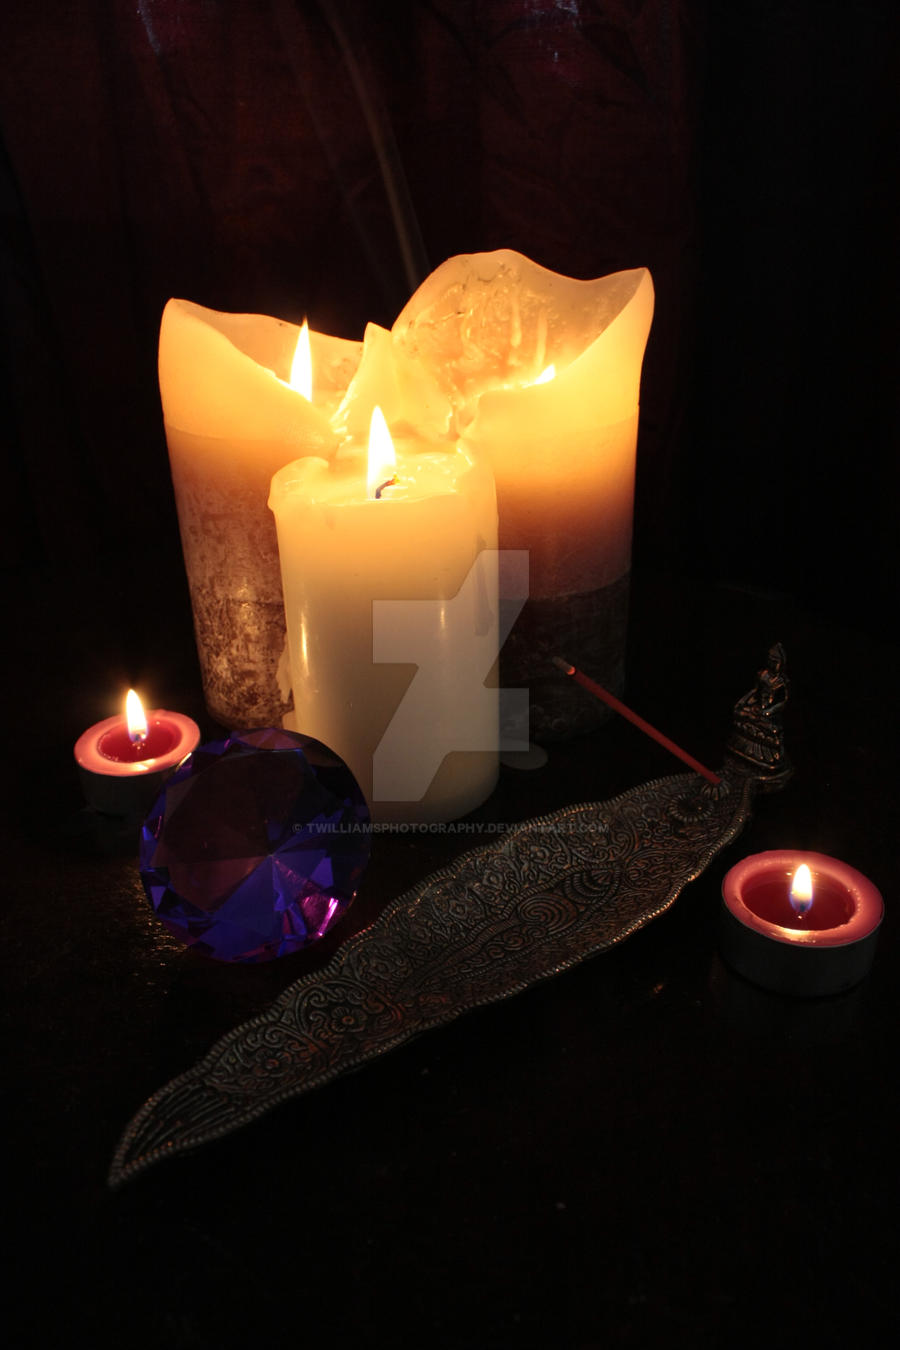 Design Gothic Candles gothic candles by twilliamsphotography on deviantart twilliamsphotography